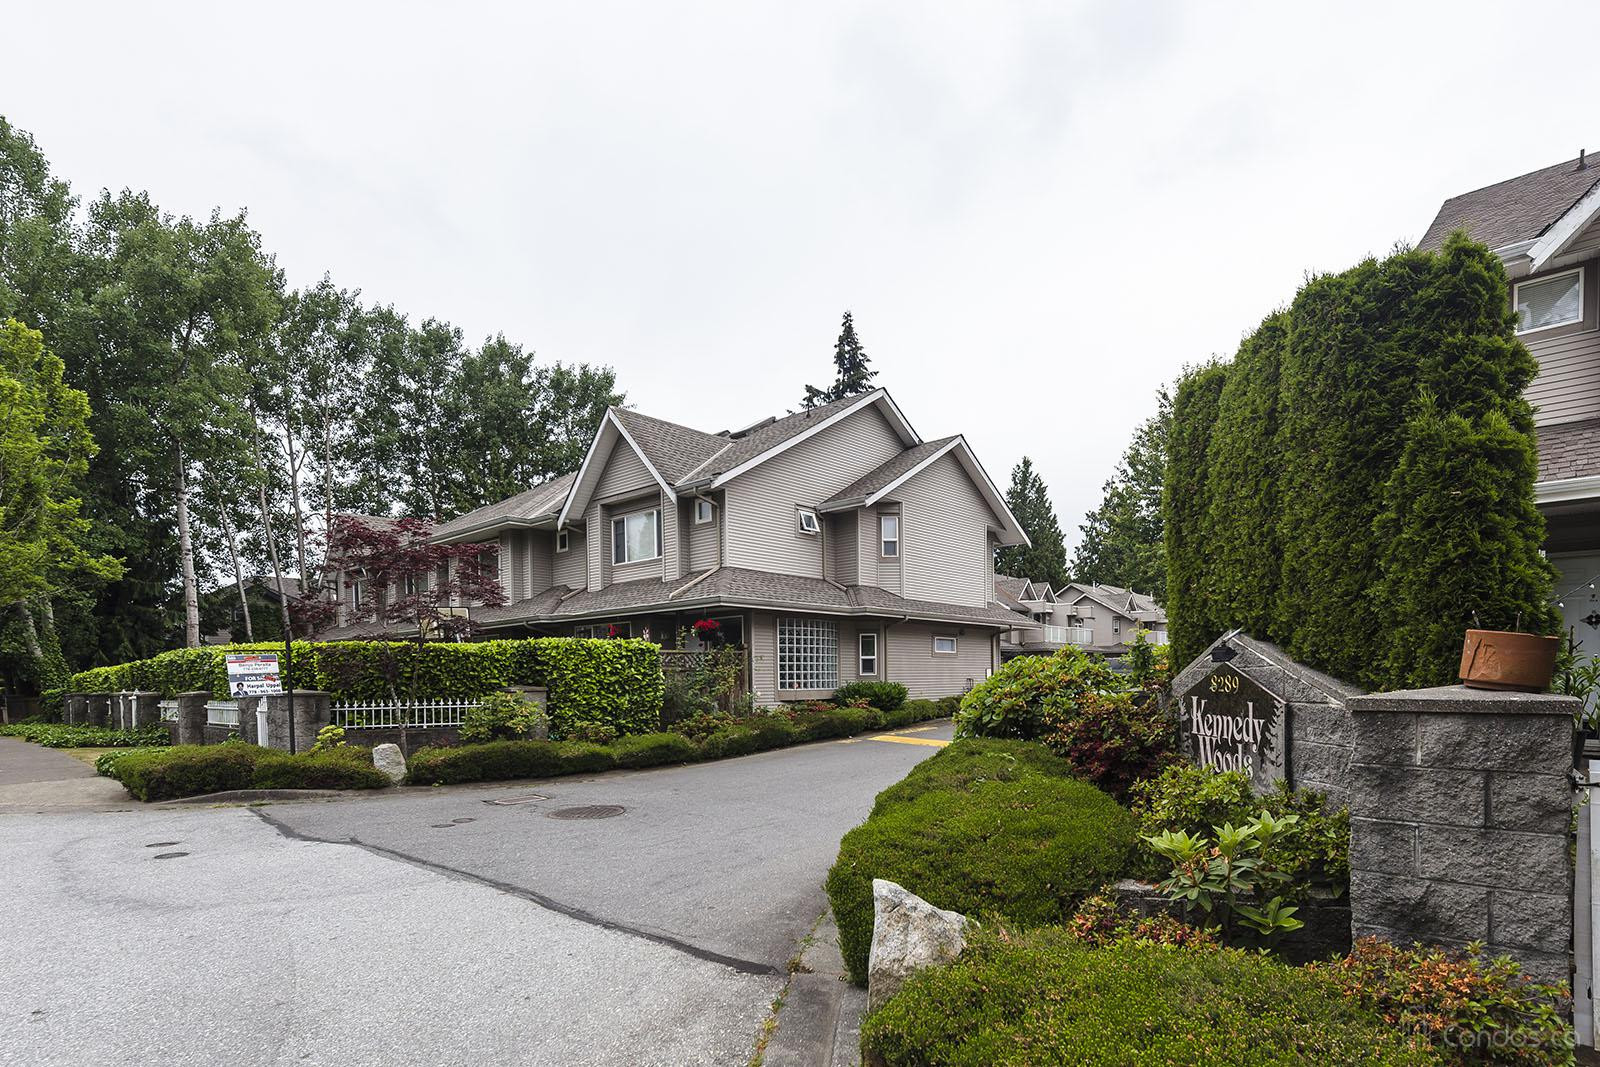 Kennedy Woods at 8289 121A St, Surrey 0